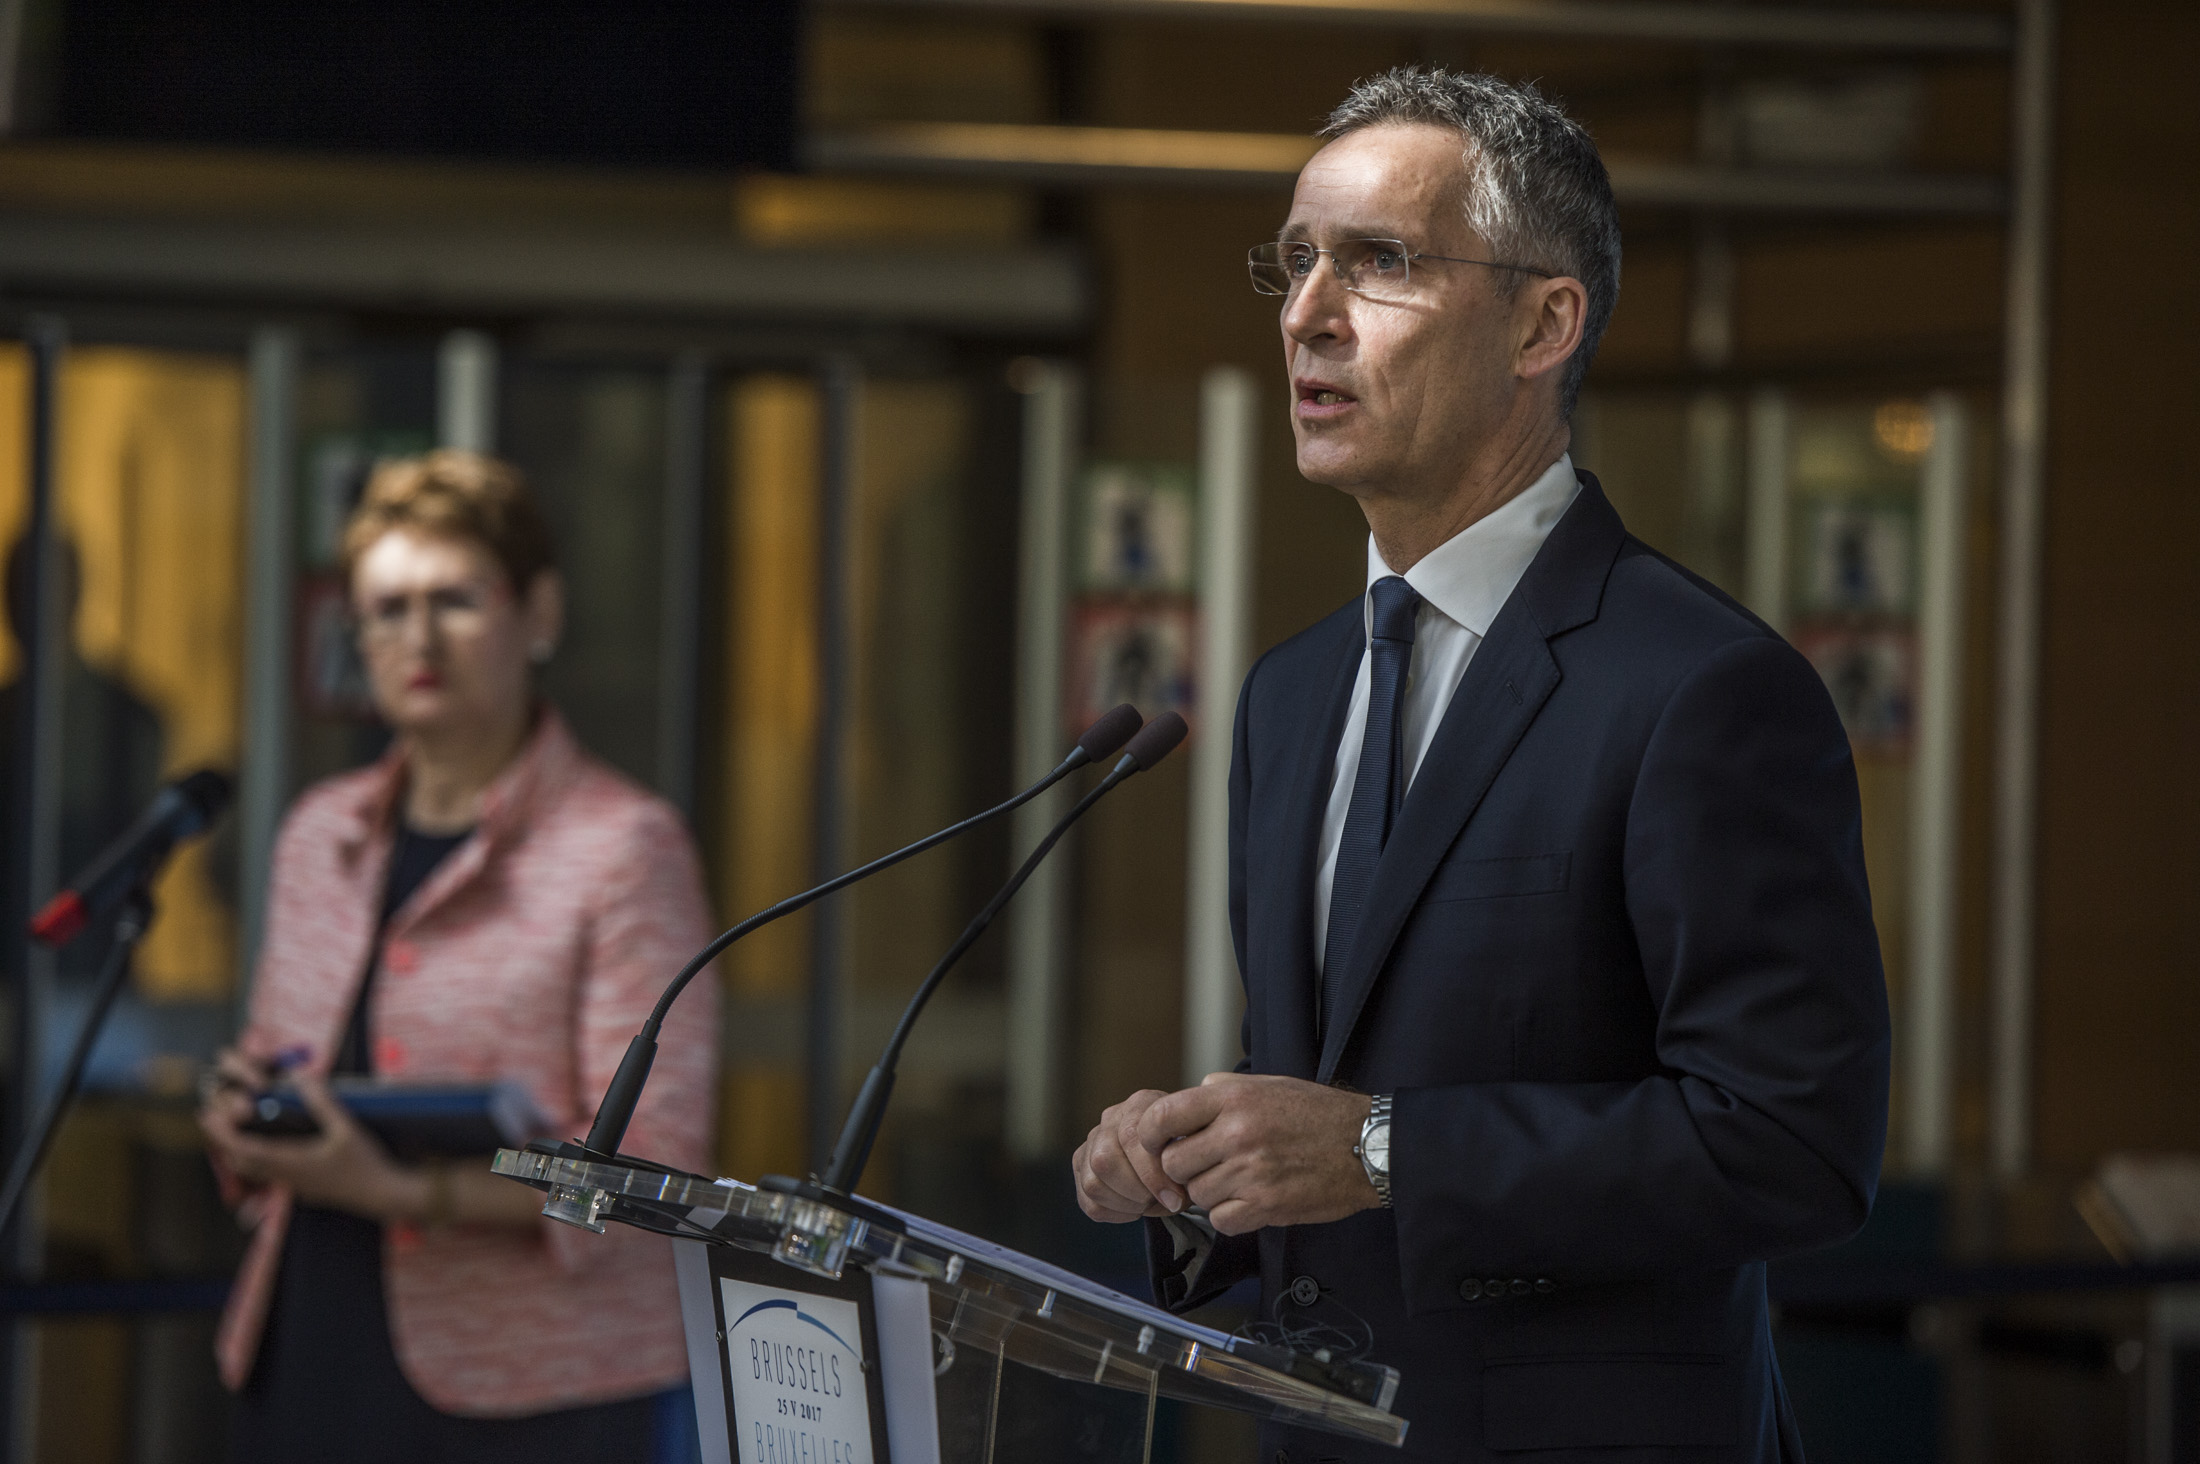 North Atlantic Treaty Organisation to Join Anti-Daesh Coalition, Though Avoid Combat Operations - Stoltenberg